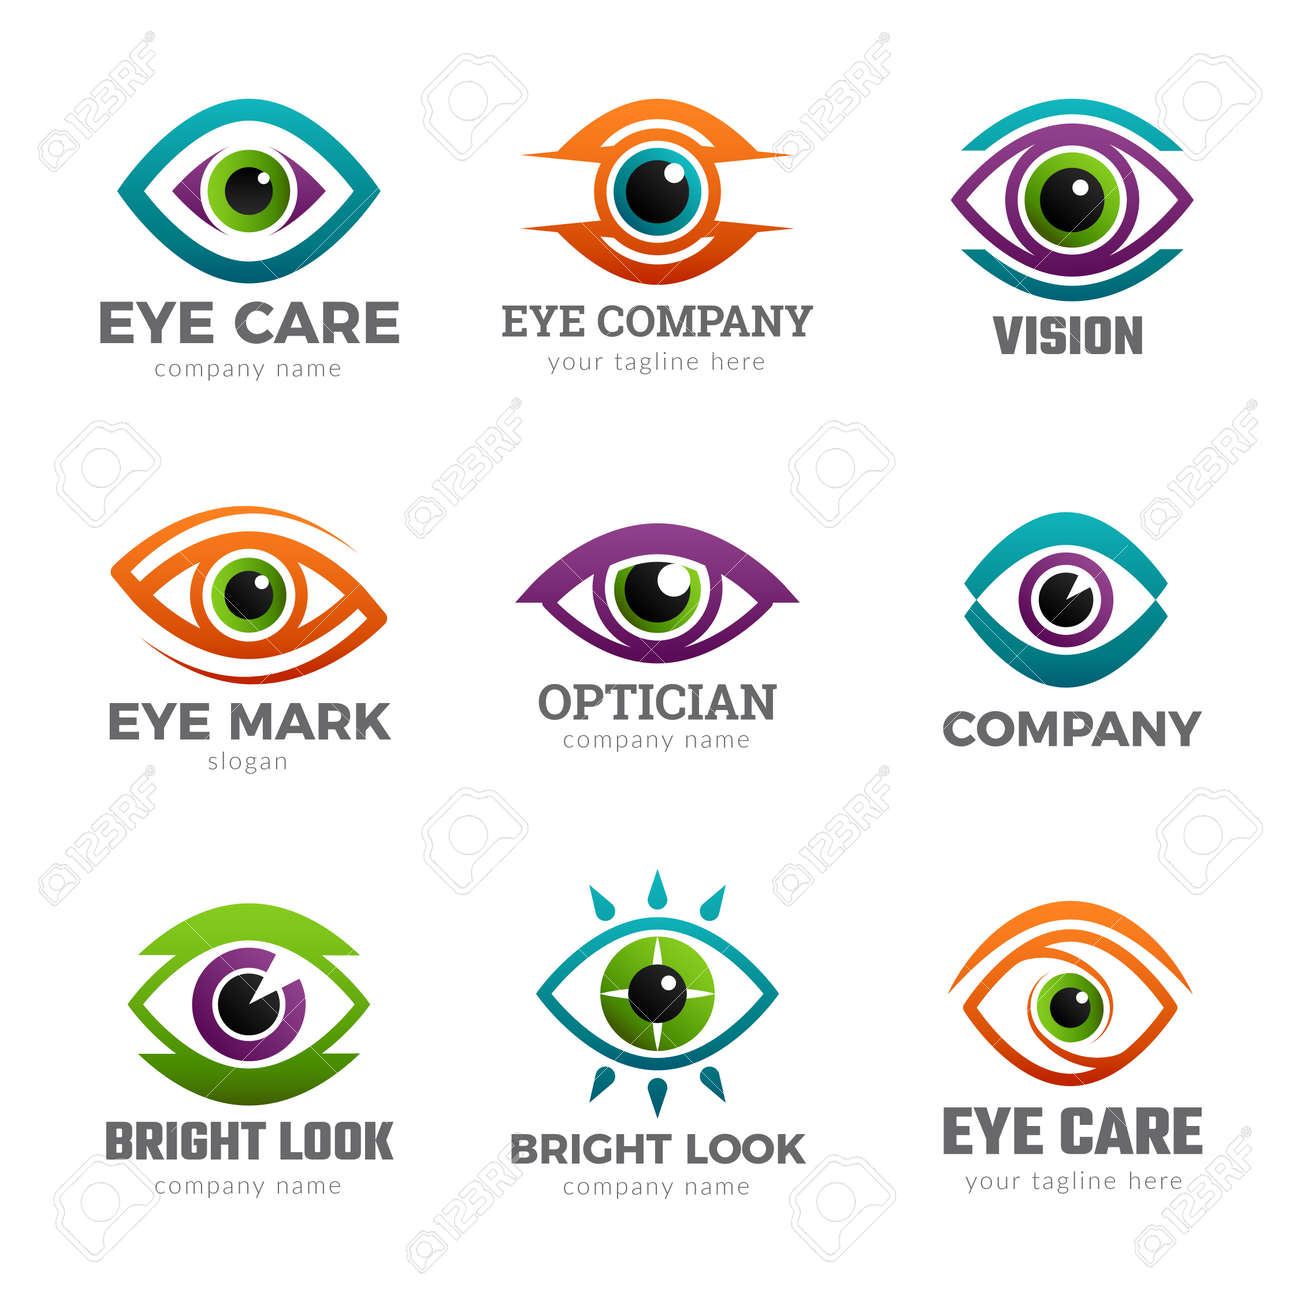 Eyes logo. Optical symbols for ophthalmology clinic clean vision recent vector collections - 168736914